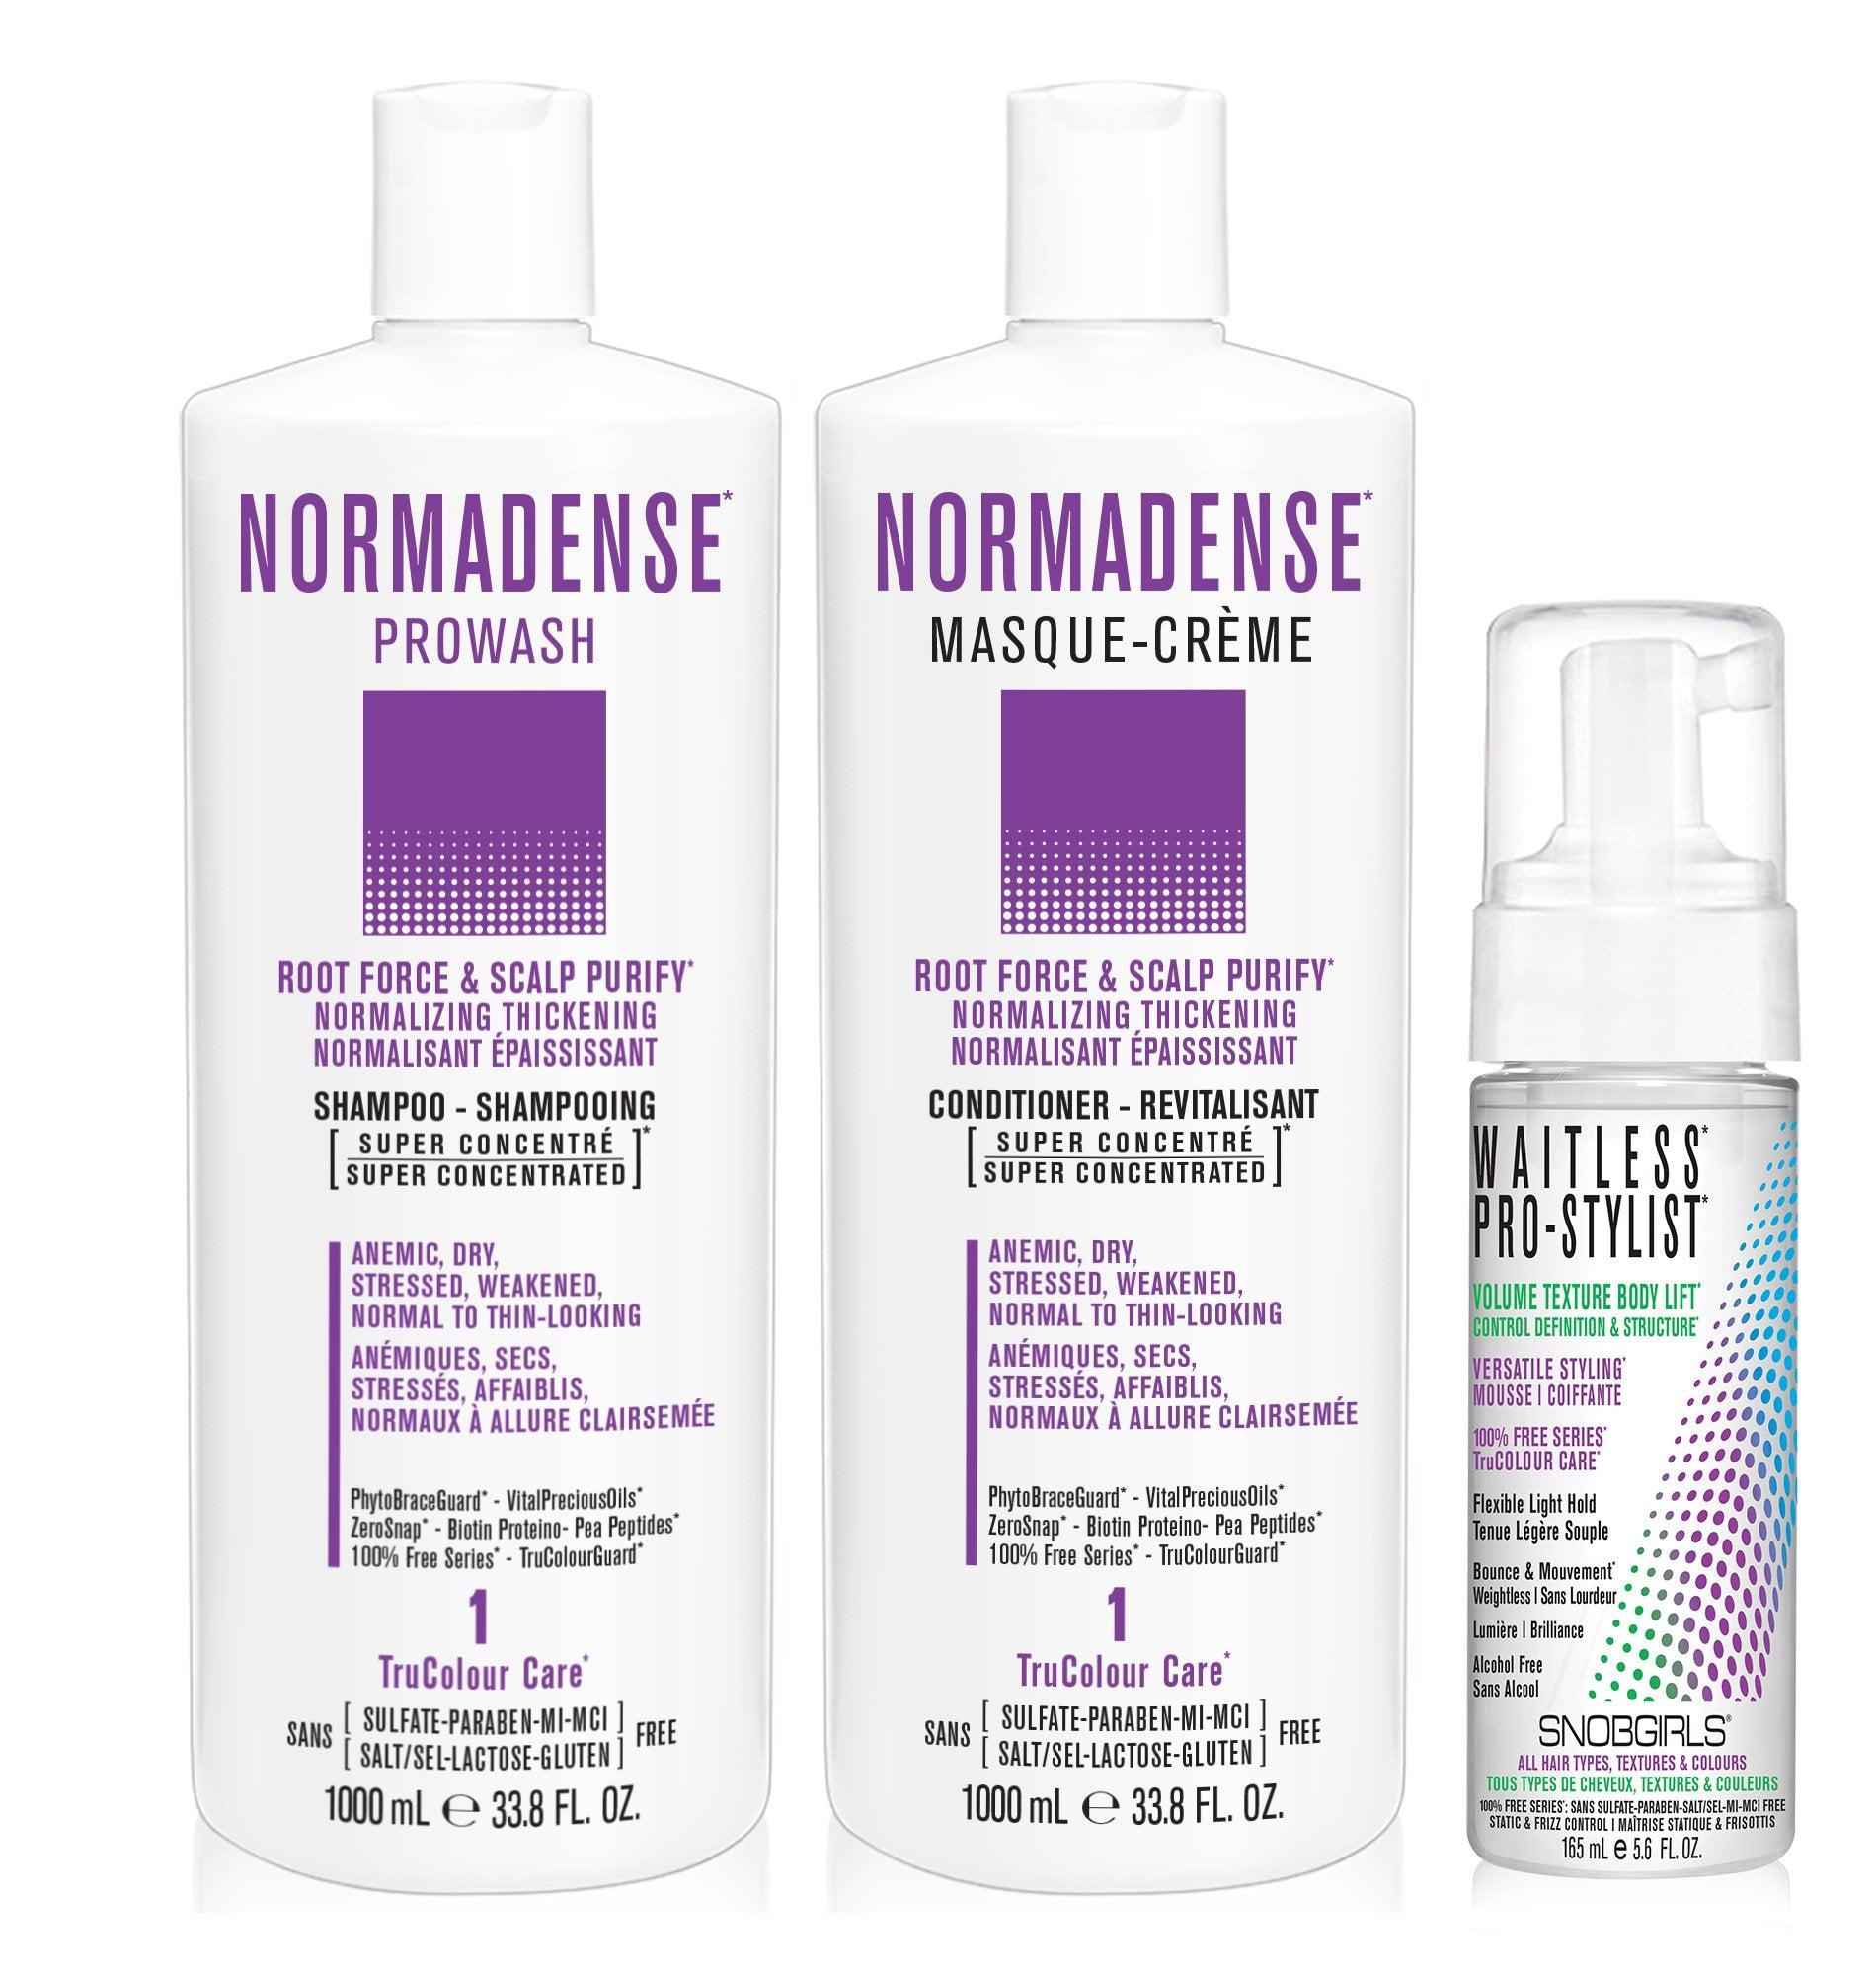 DUO NORMADENSE 1 Bundle- 1 Shampoo with 1 Conditioner 1000 mL and 1 Styling Mousse - SNOBGIRLS Canada